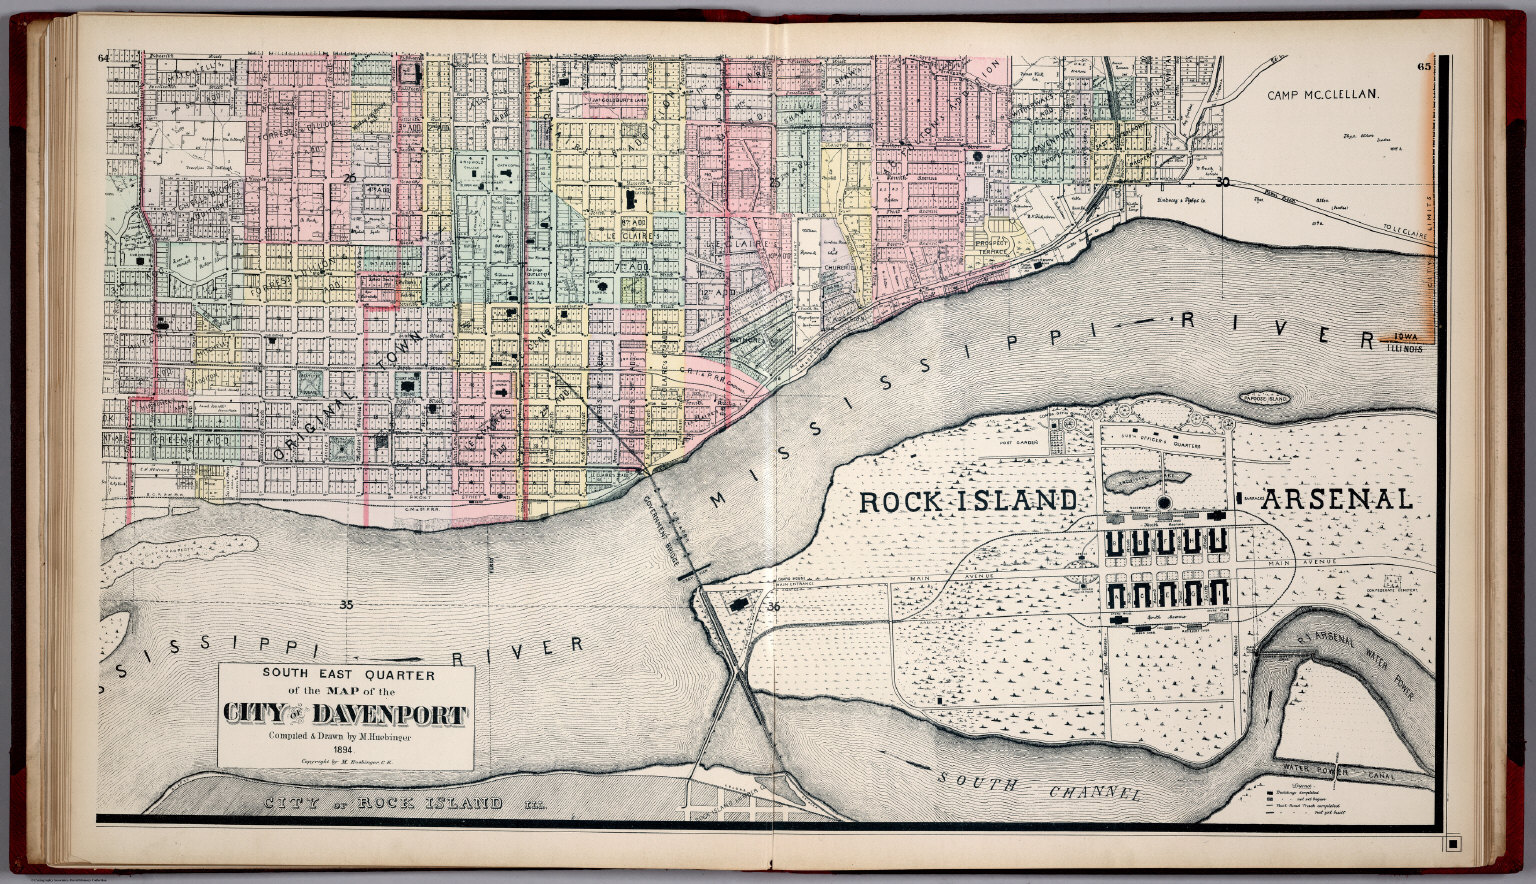 South East Quarter of the Map of the City of Davenport Iowa